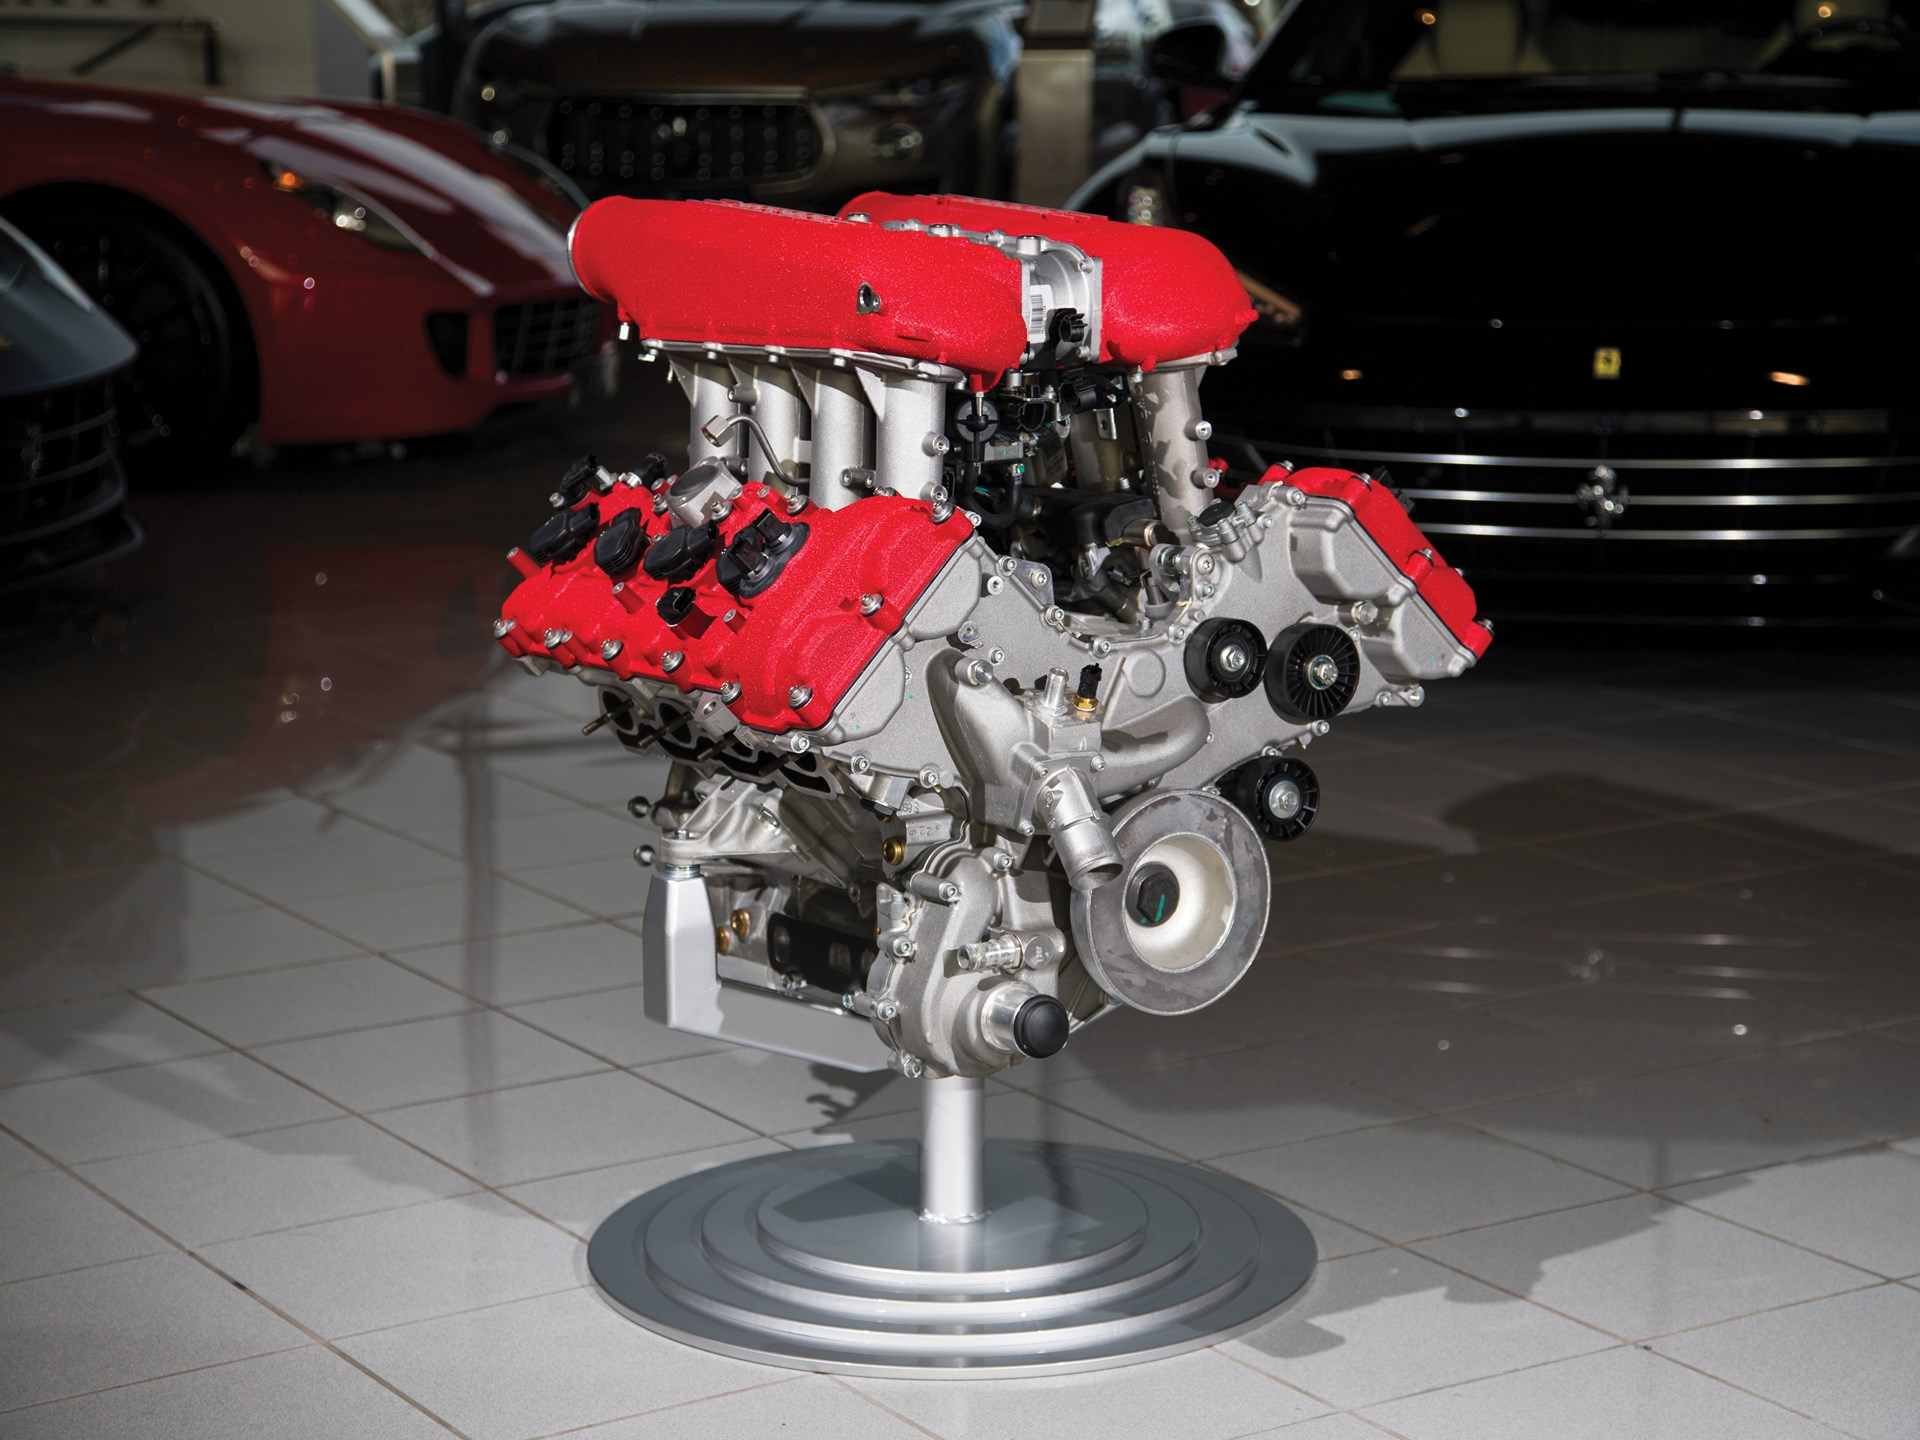 Ferrari 458 Italia Engine with Stand